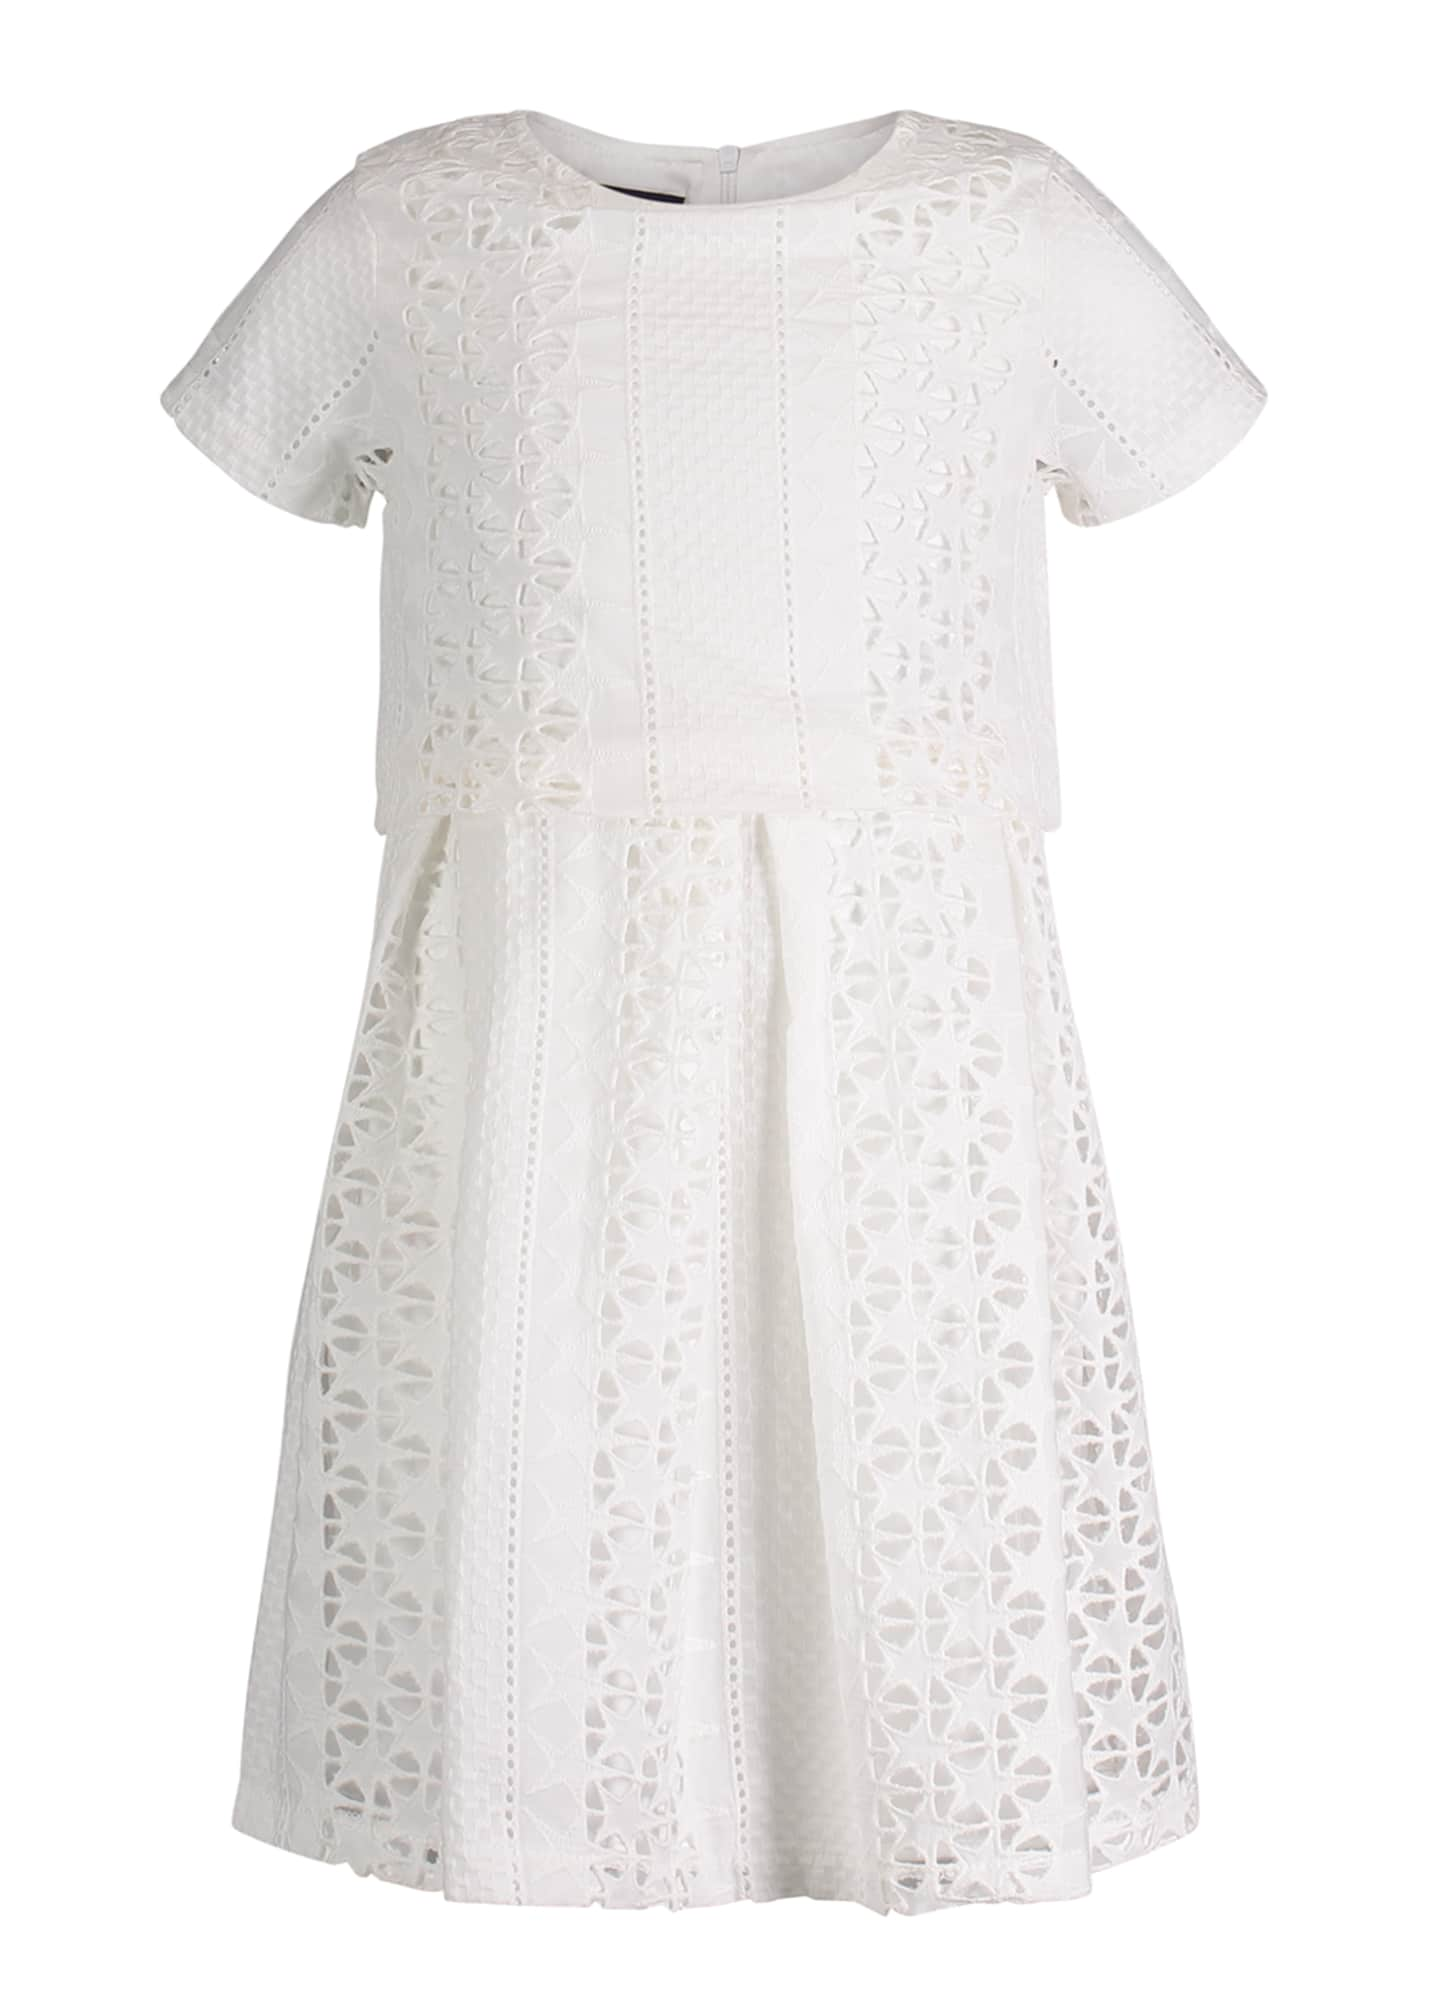 Andy & Evan Short-Sleeve Summer Lace Dress, Size